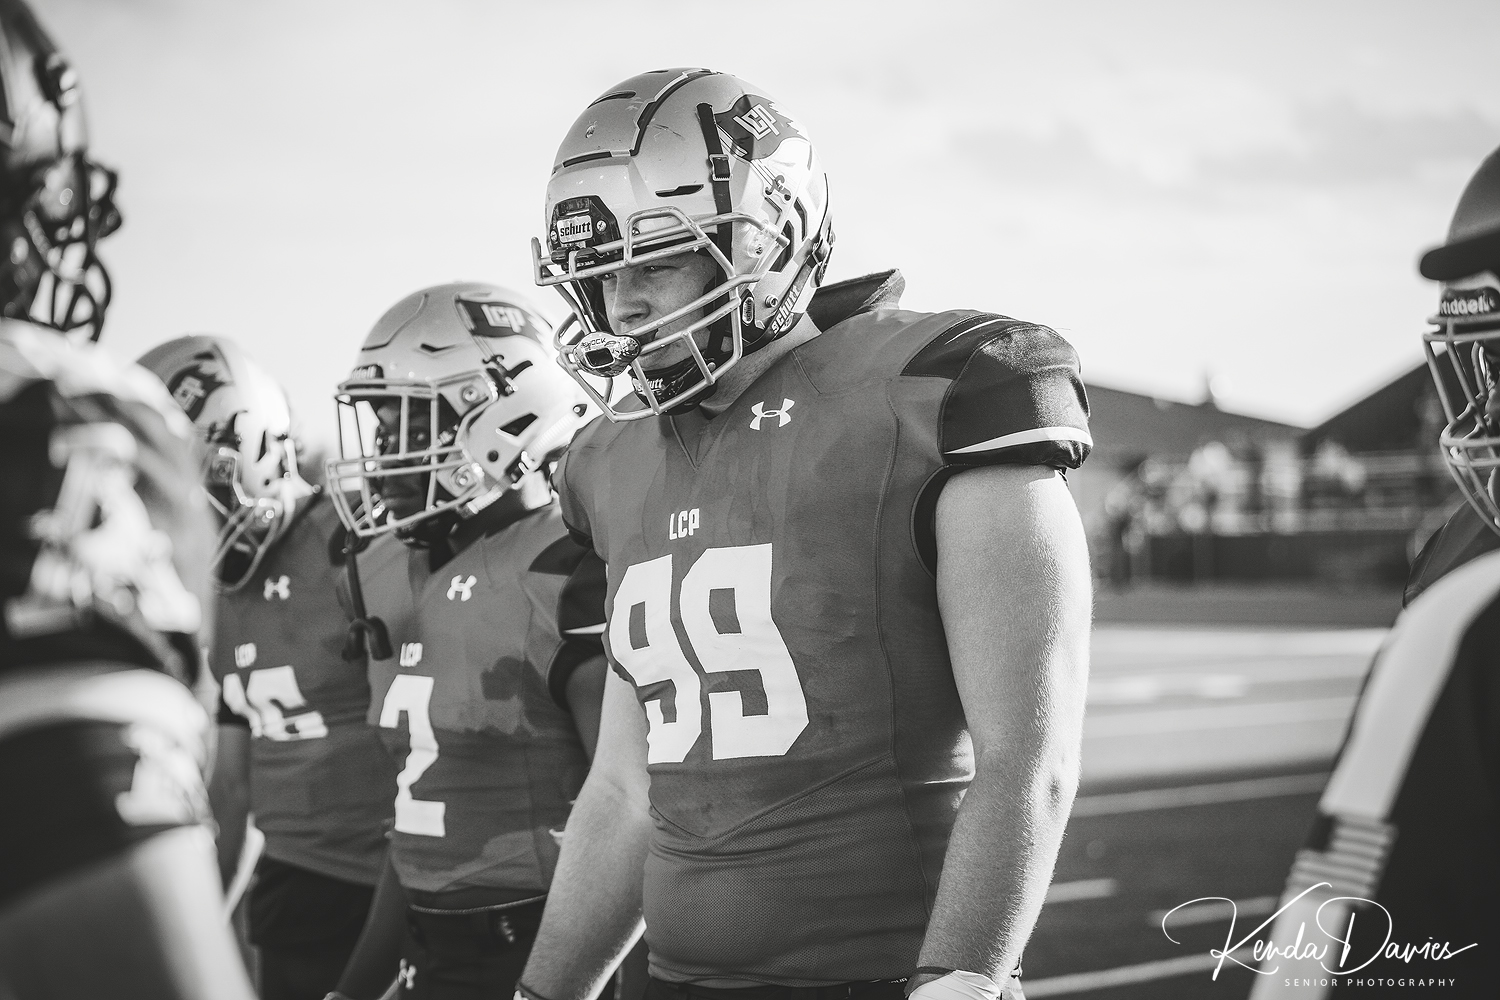 #99 Gage Peters eyes his opponents after waiting an entire year to get back on the field after a season ending knee injury sidelined him his junior year.